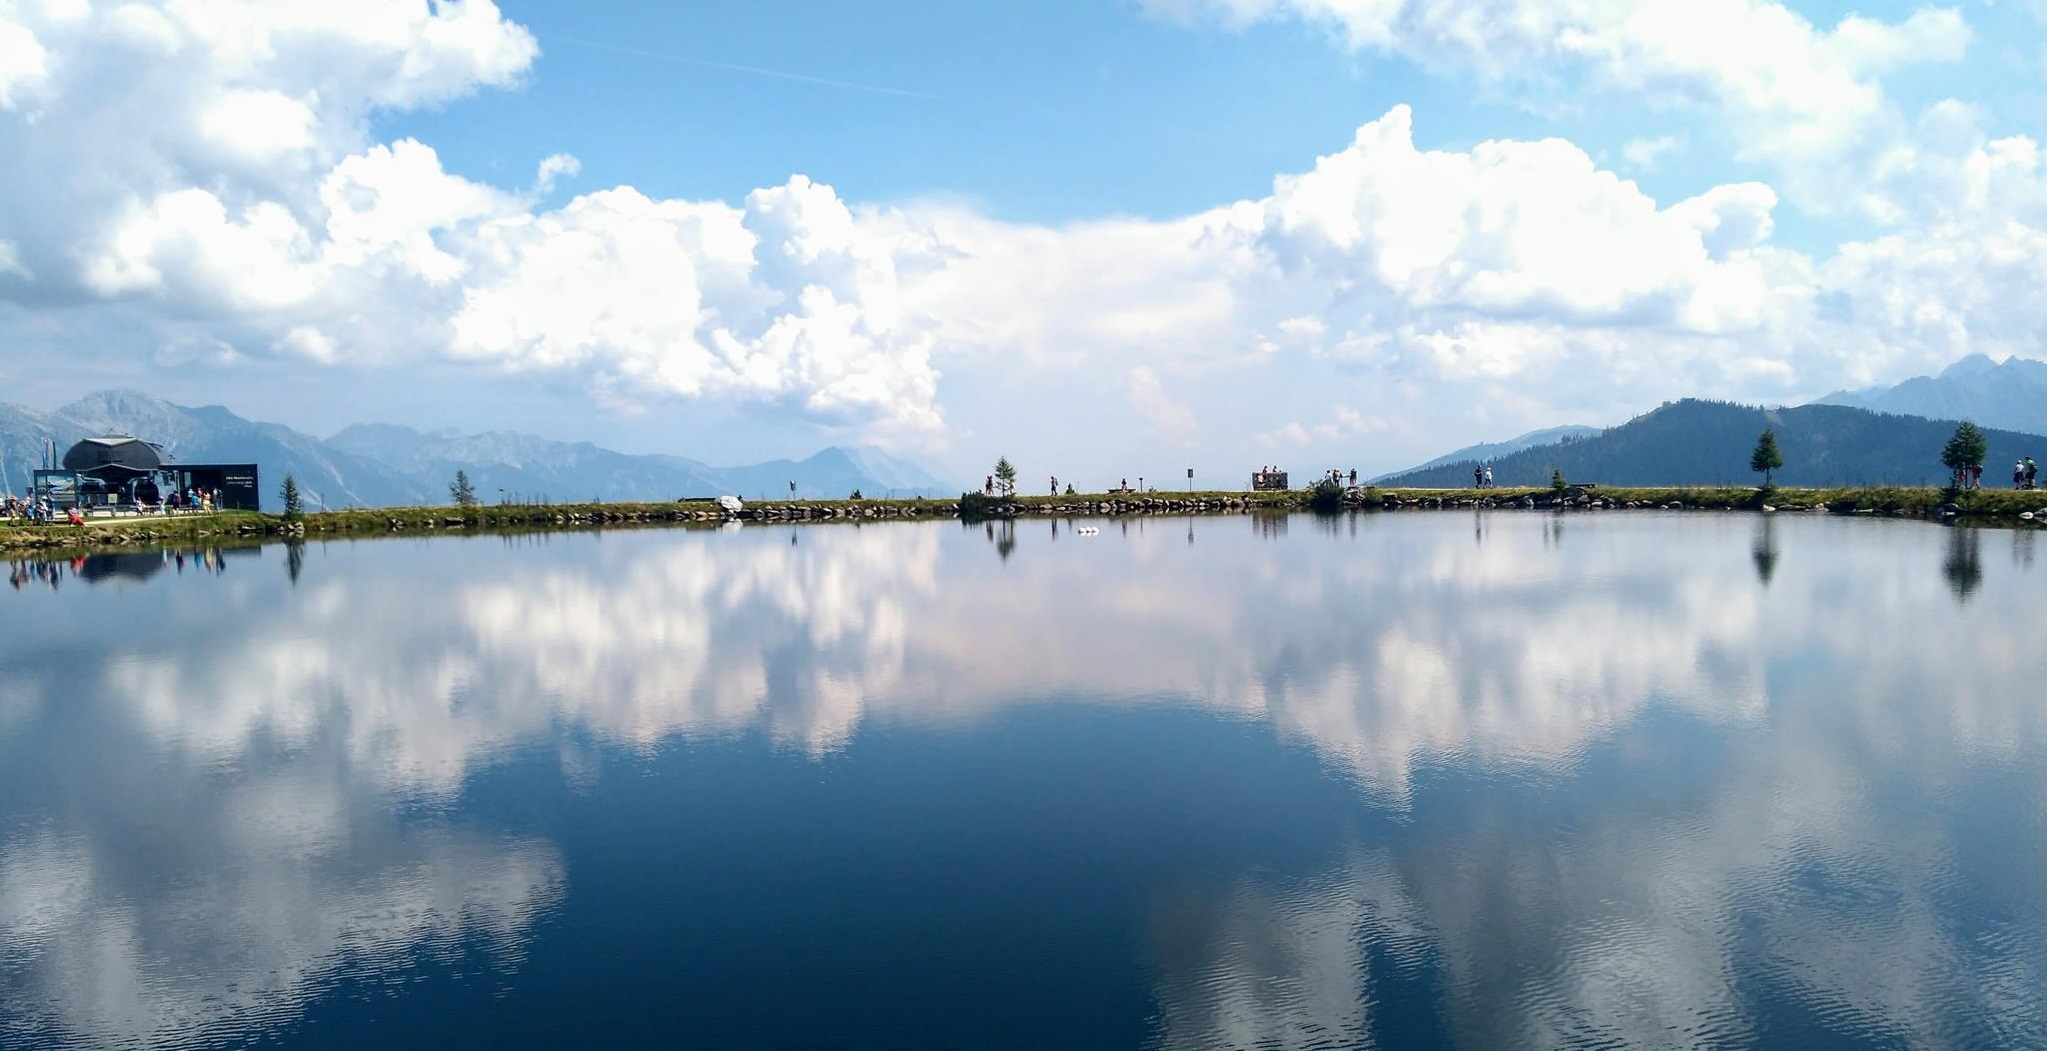 Blue sky and clouds reflected in quiet water